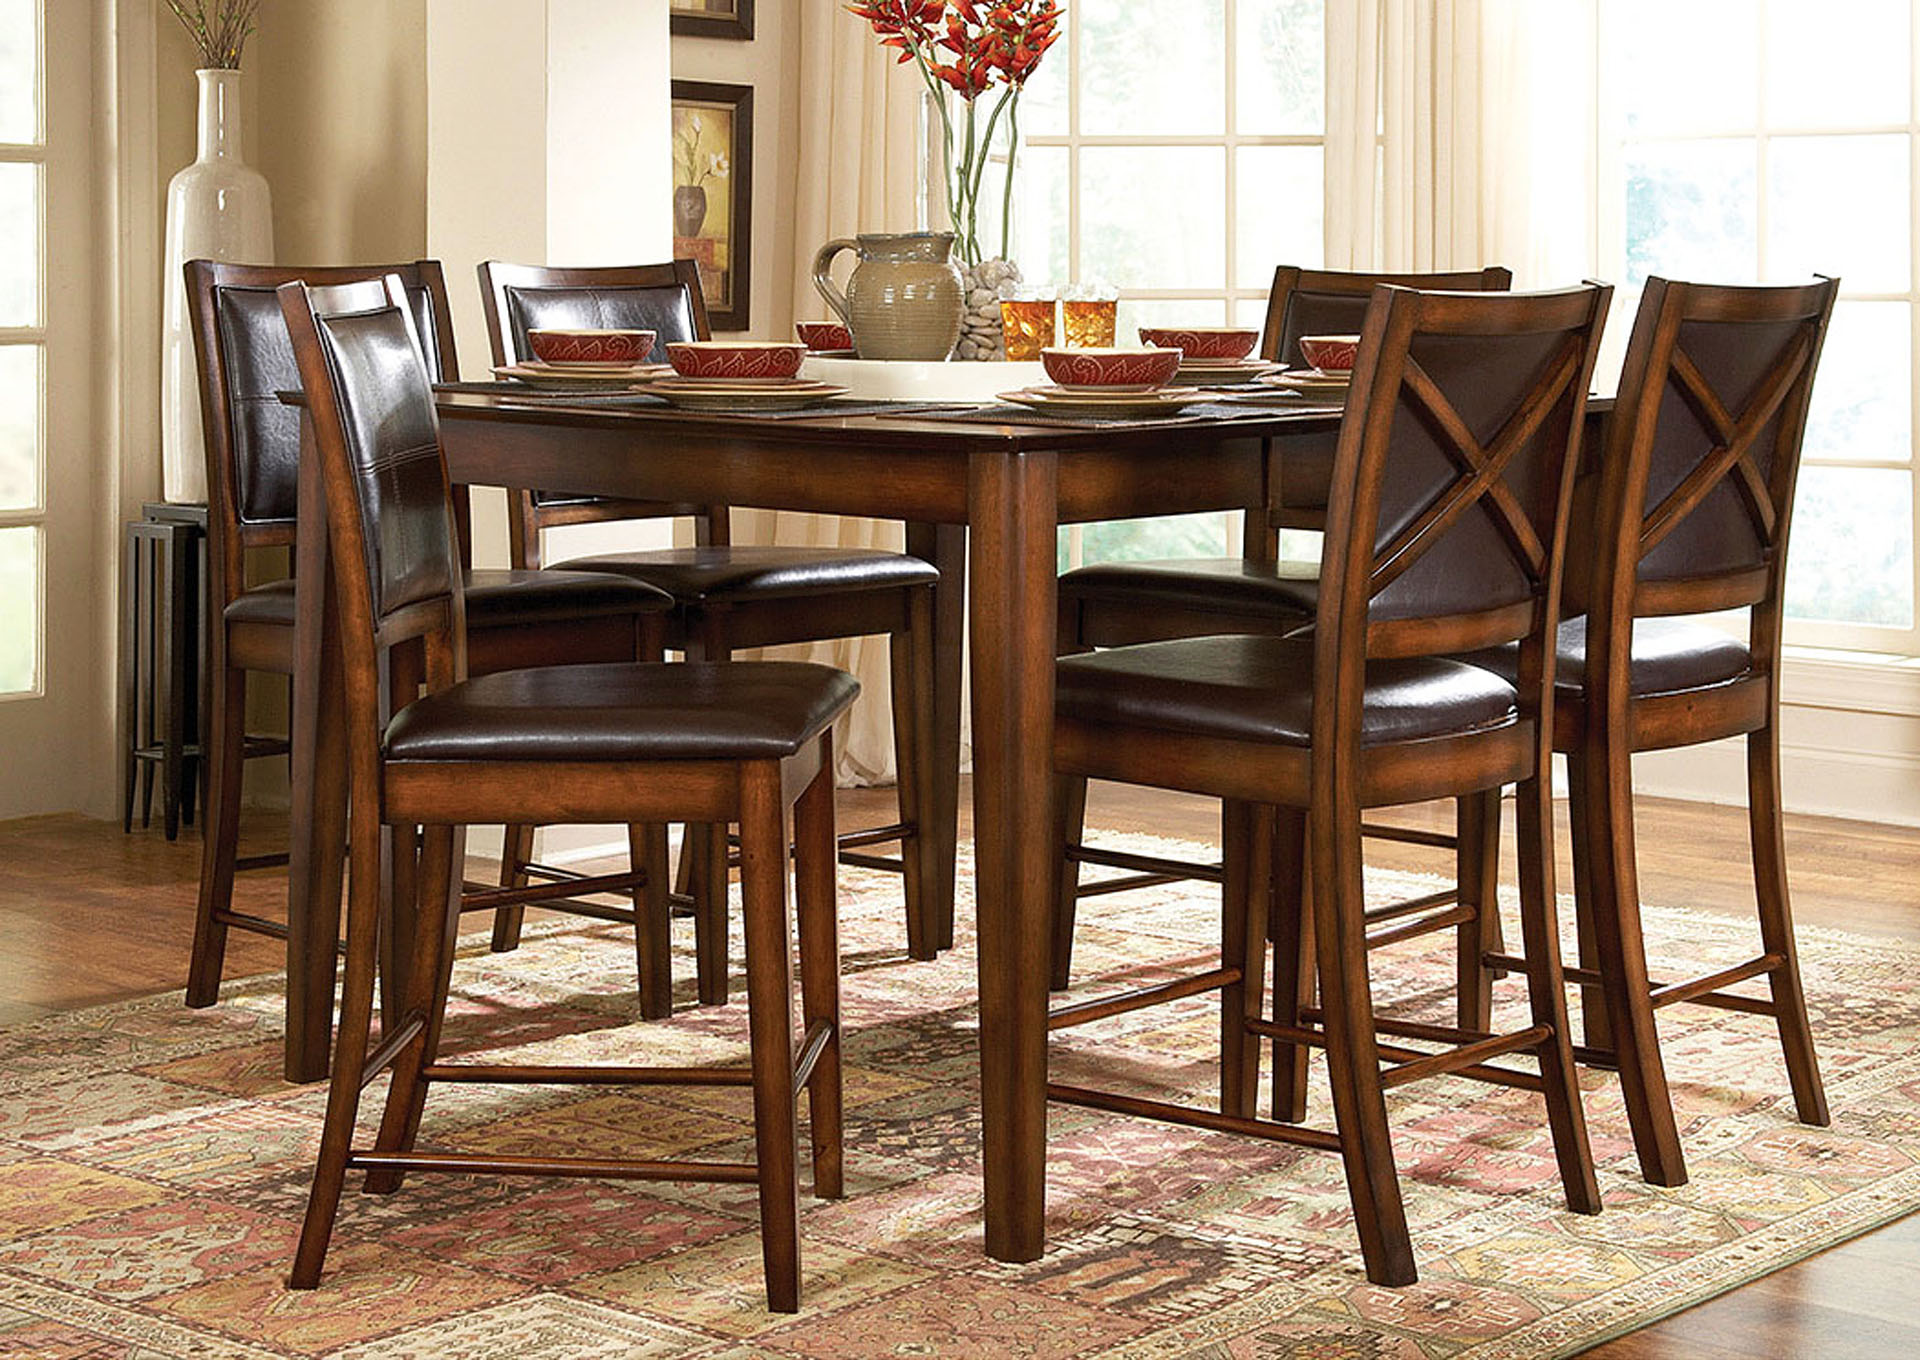 Central Furniture Mart Verona Square Counter Height Dining Table W 4